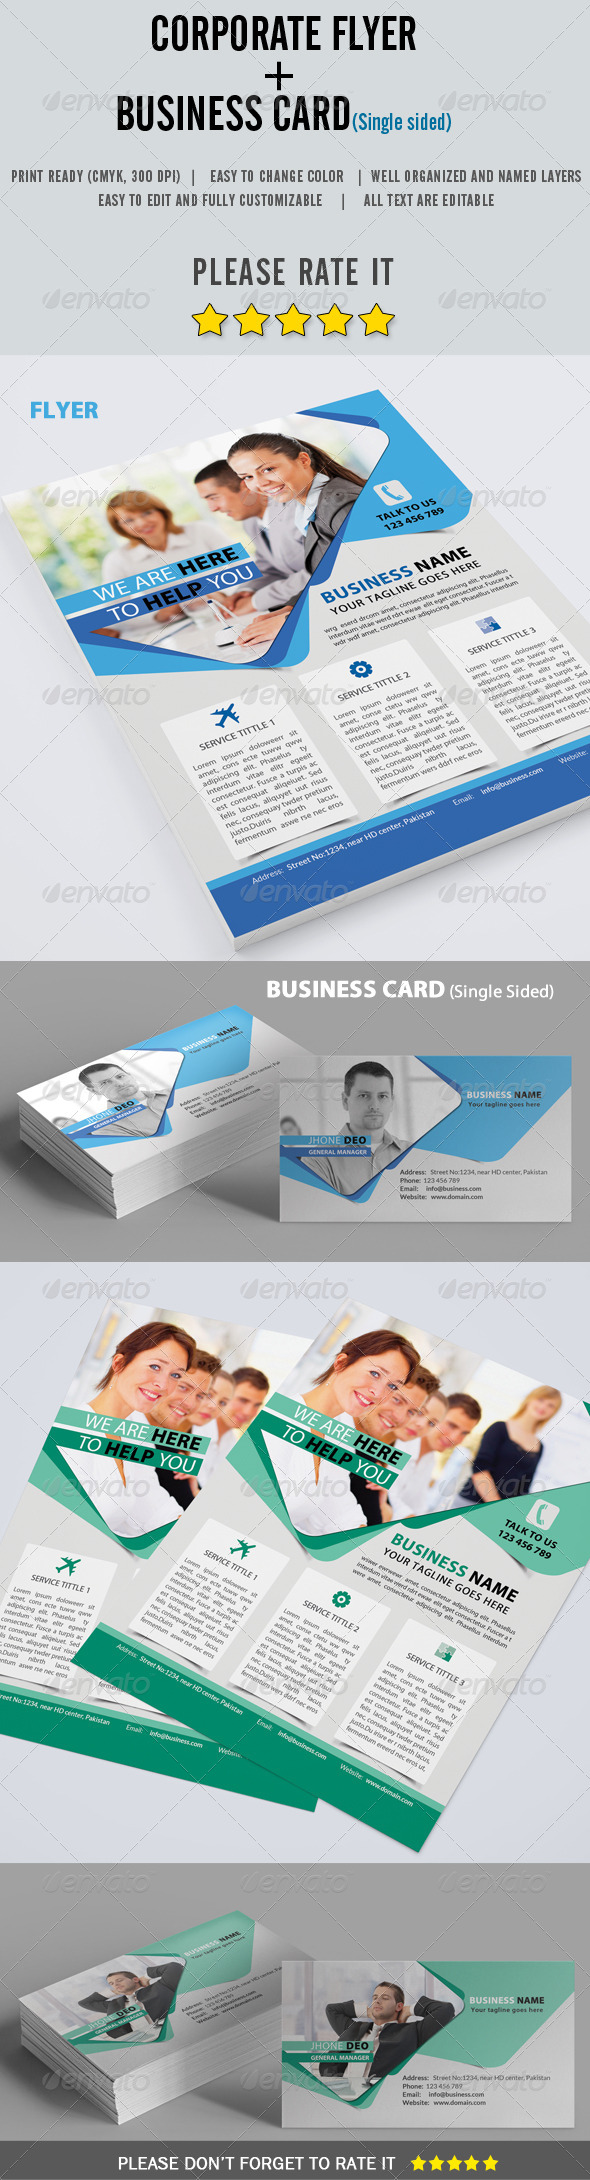 GraphicRiver Corporate Flyer & Business Card 8185151